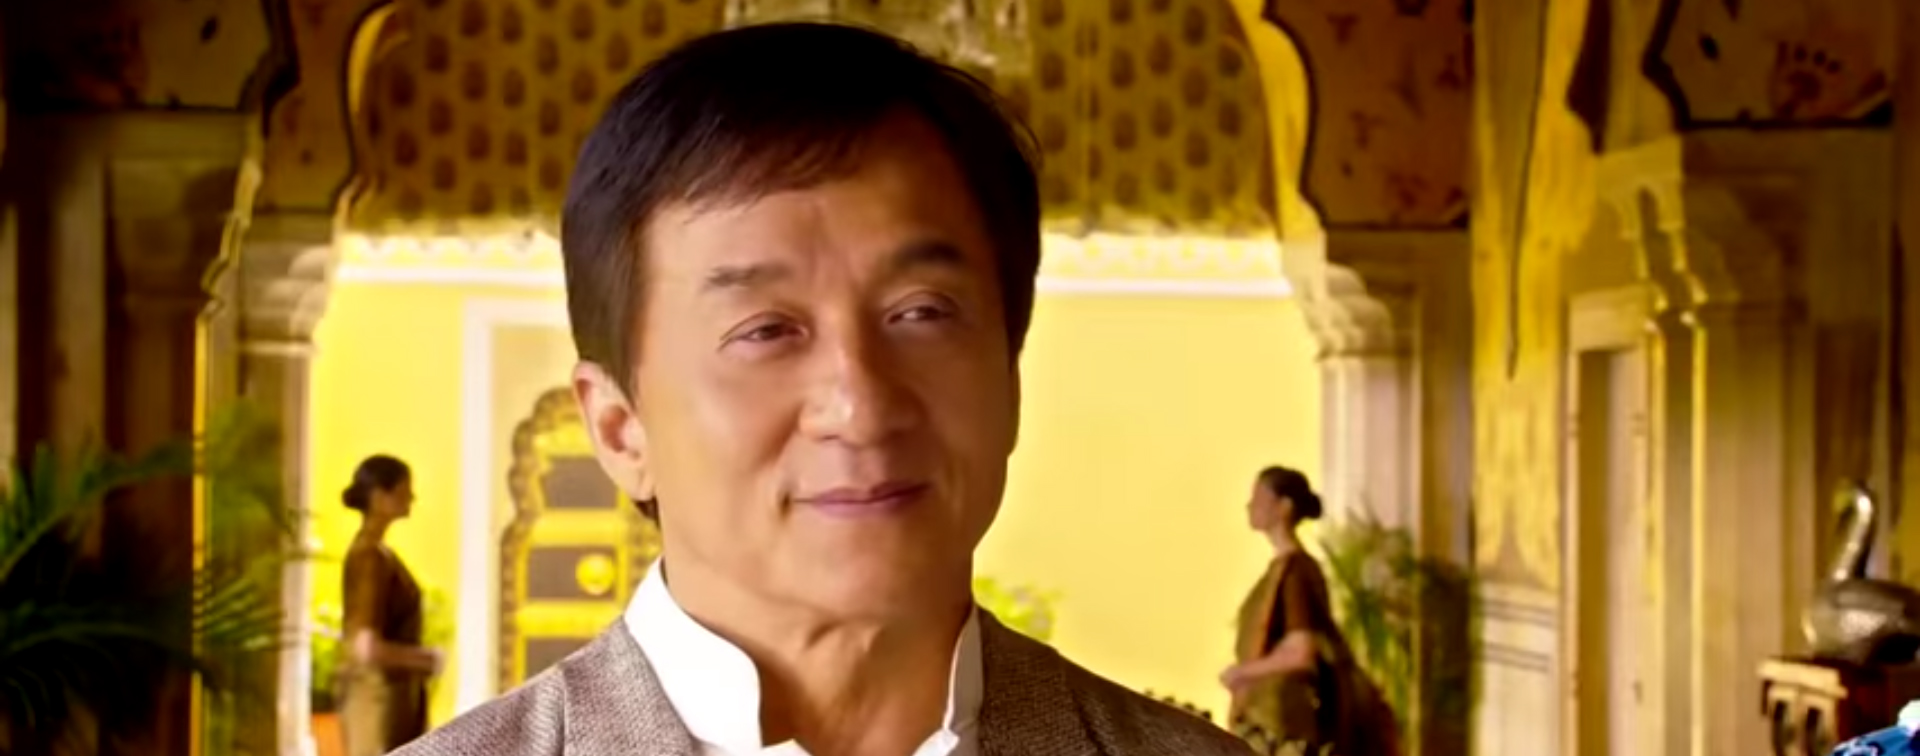 Kung Fu Yoga (Gong fu yu jia, 功夫瑜伽). Image Credit: Shinework Pictures.